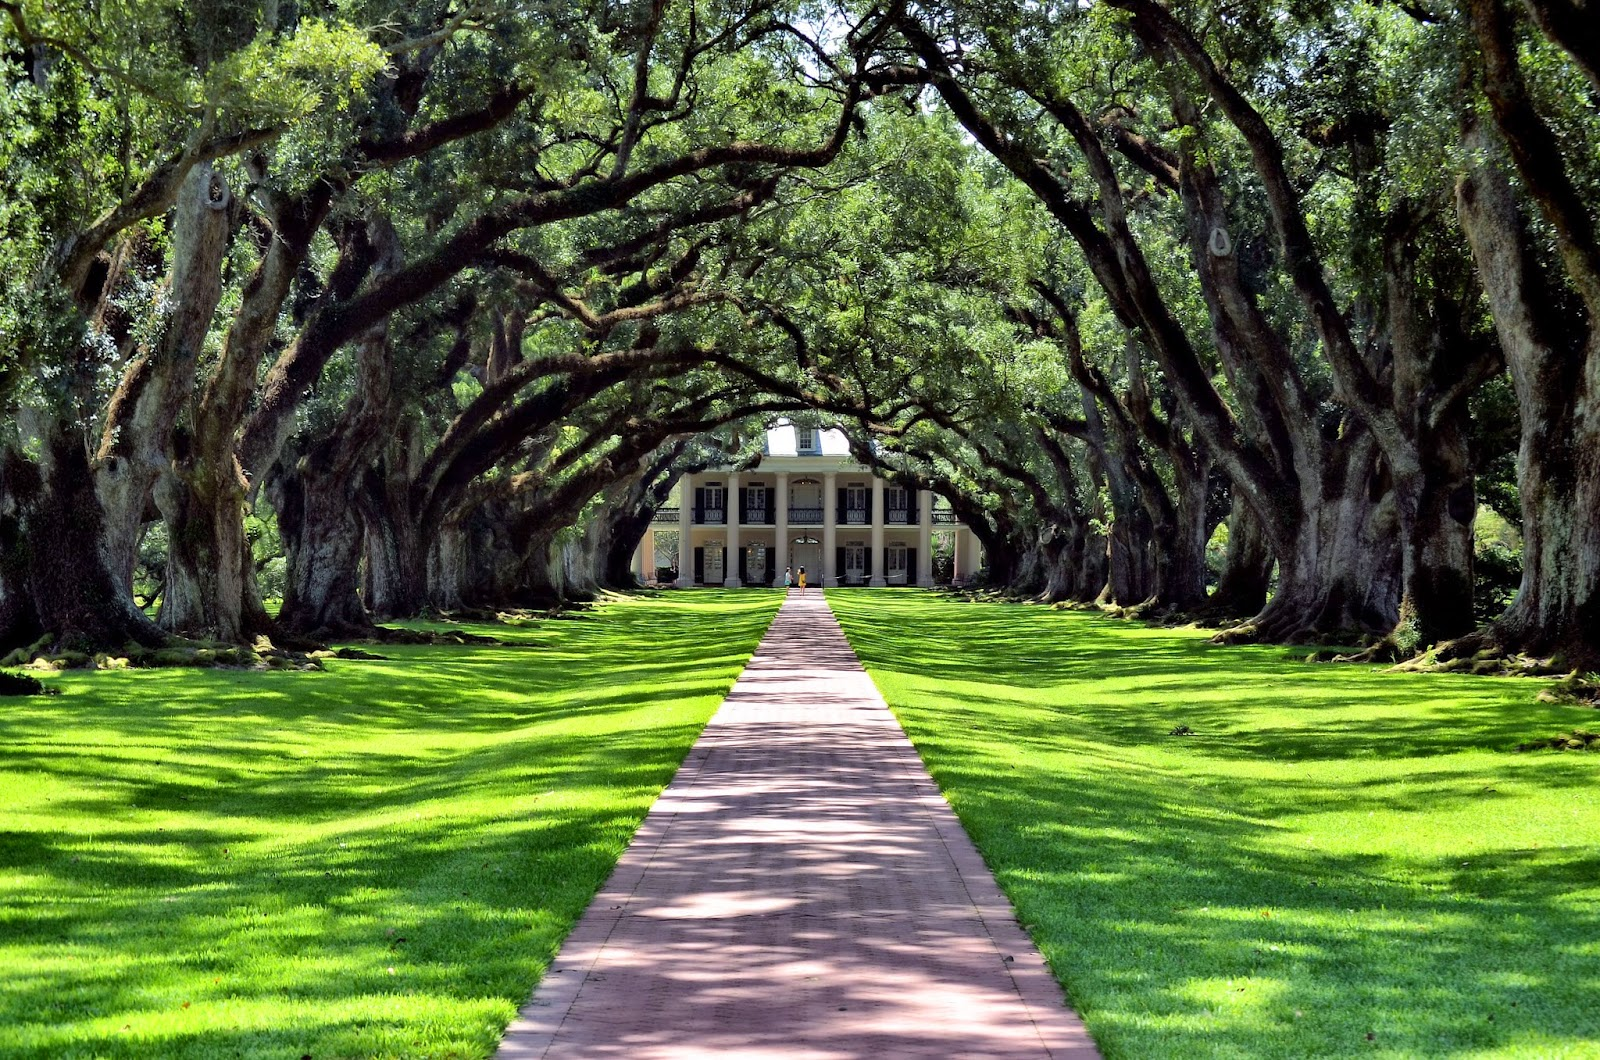 Room With No View: Oak Alley Plantation: An Iconic View ...